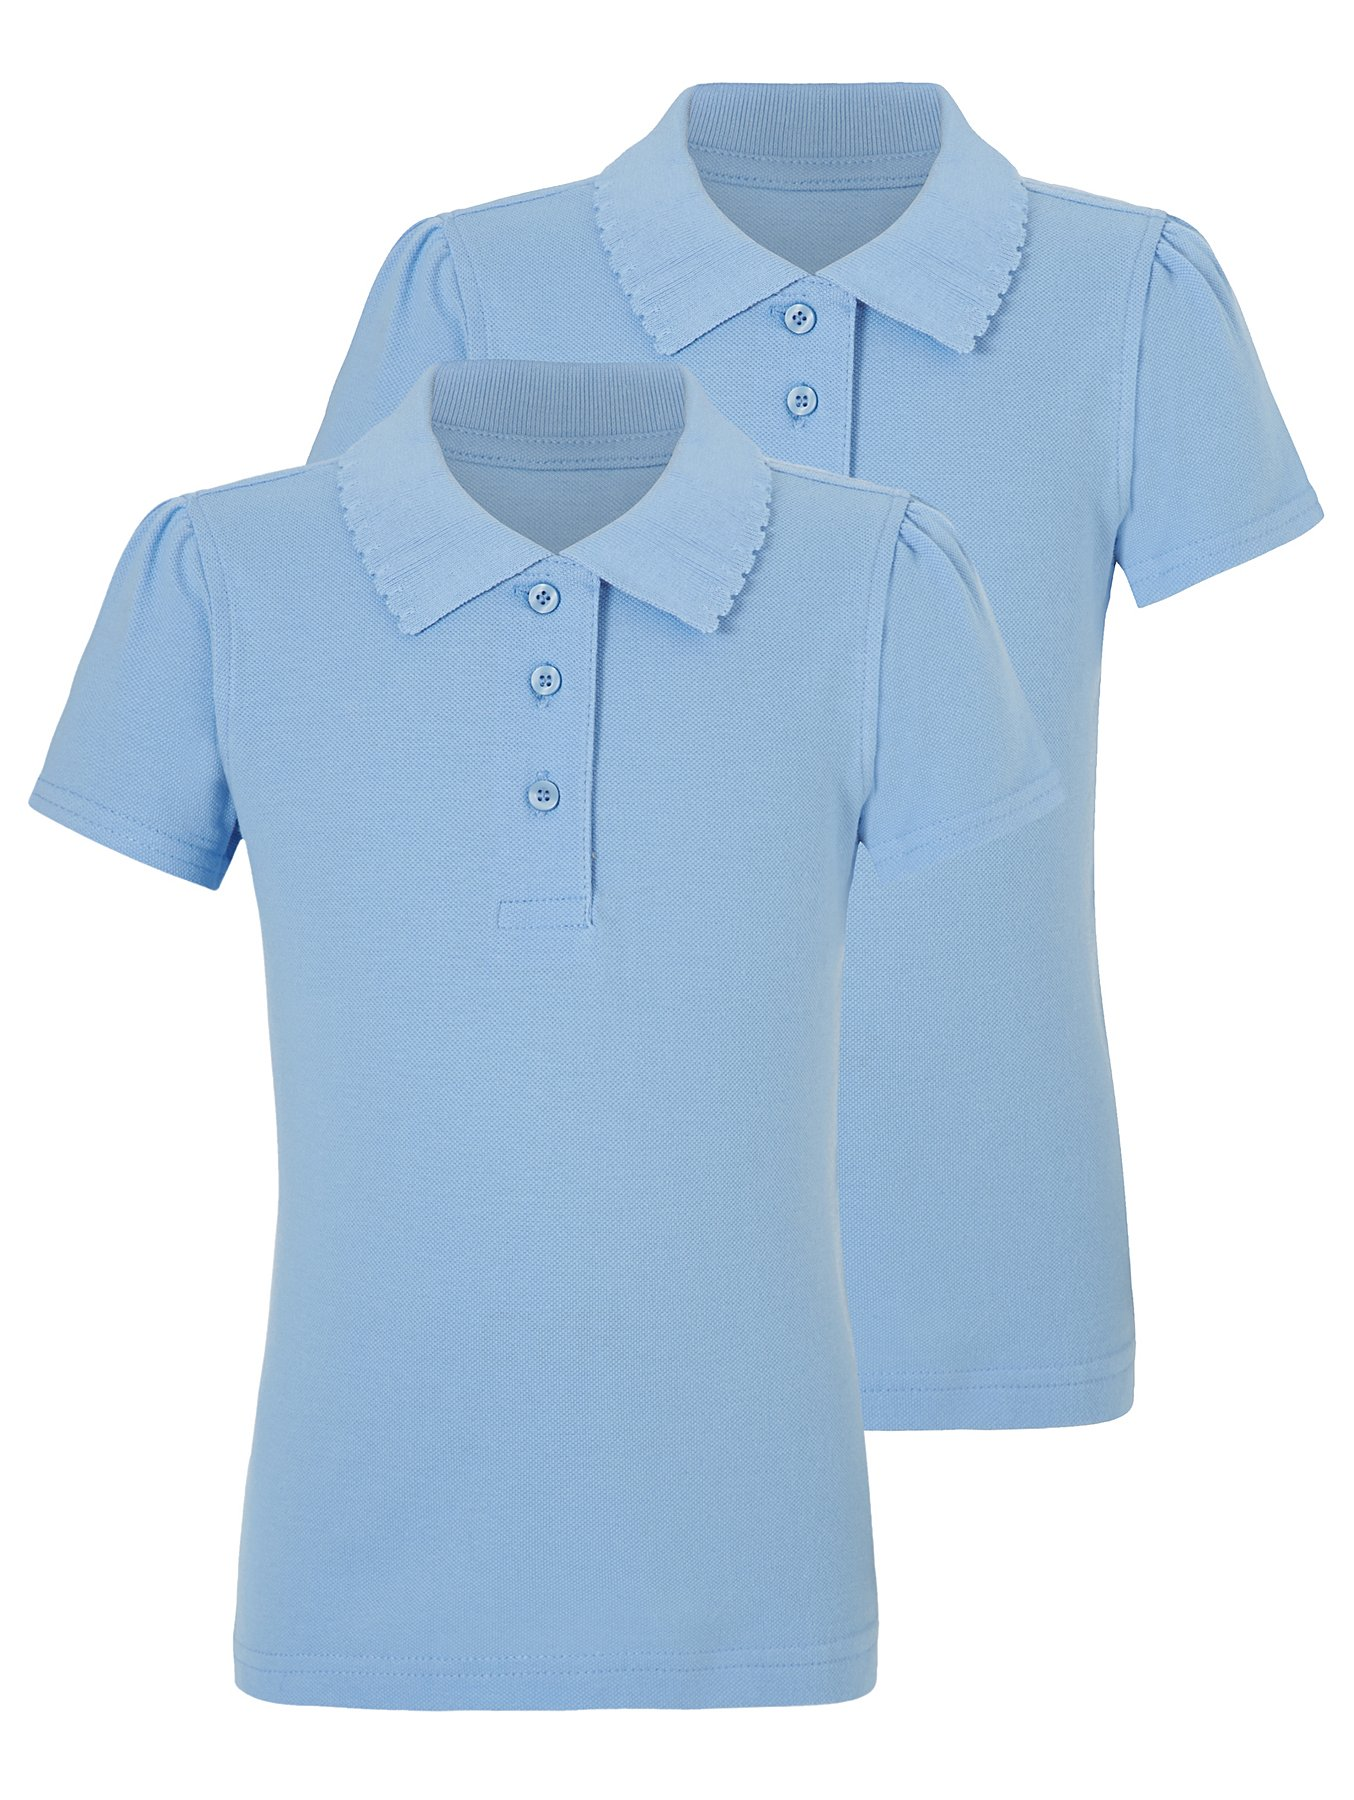 Girls School 2 Pack Scallop Polo Shirts Blue School George At Asda